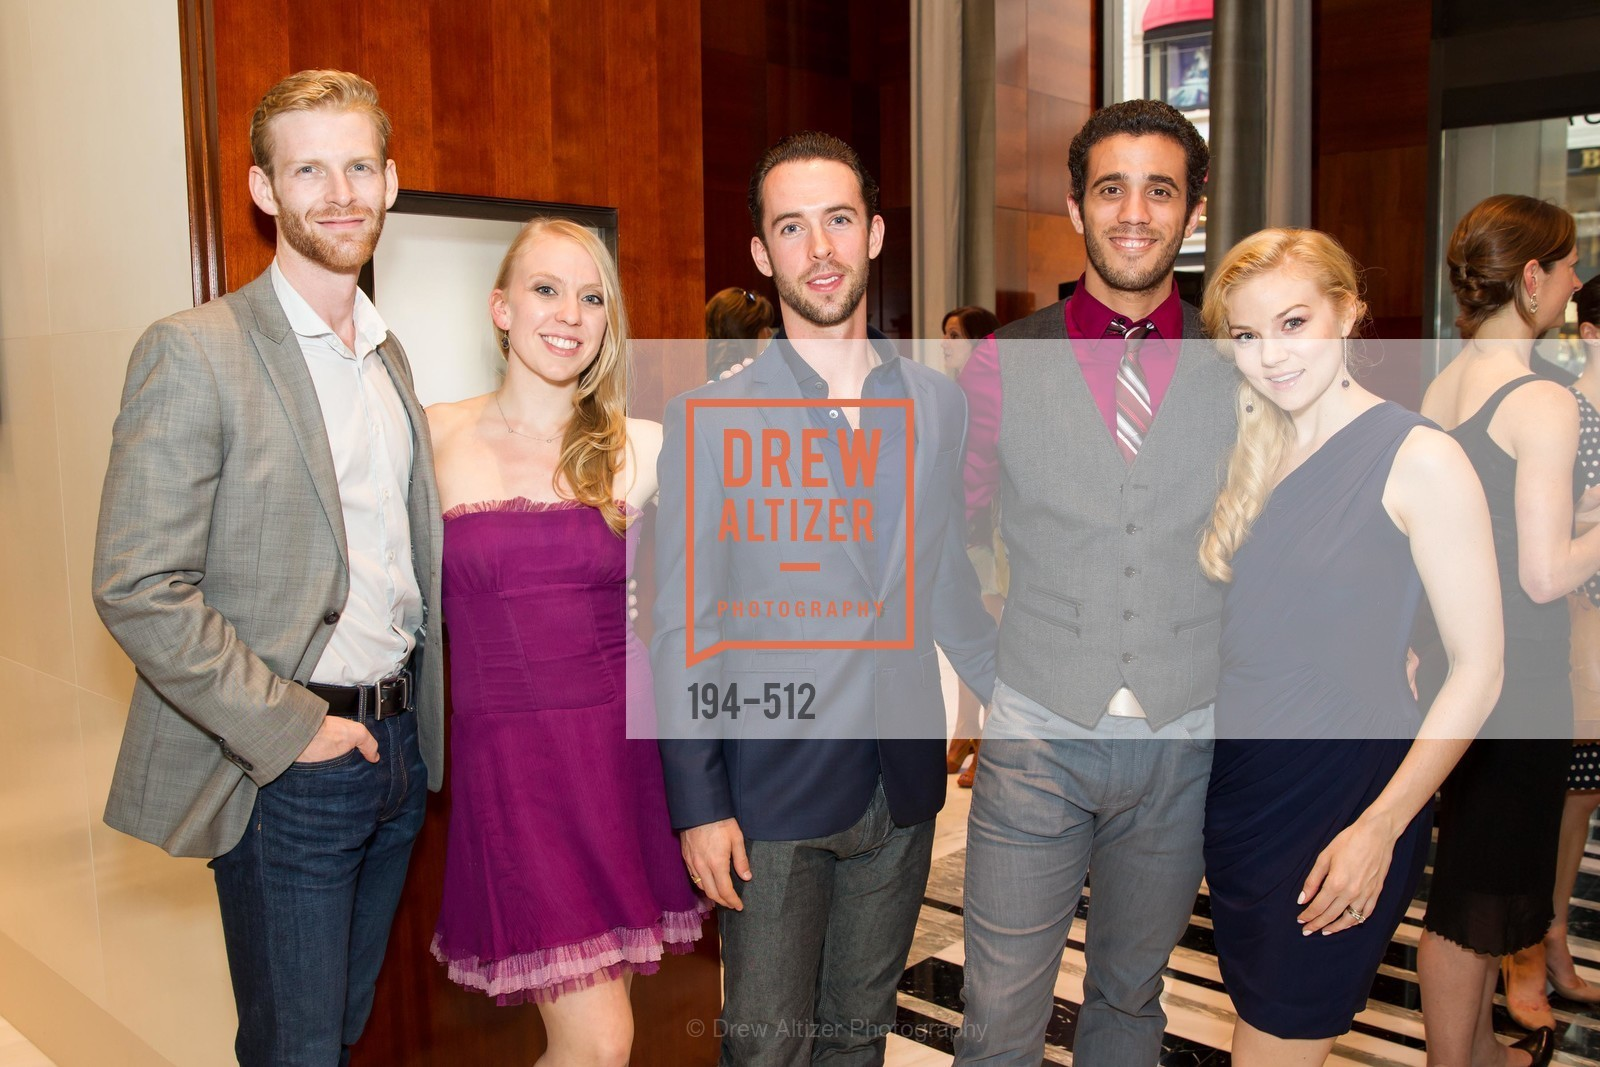 Josh Reynolds, Nicole Haskins, Ben Needham-Wood, Eduardo Permuy, Erica Felsch, GRAFF Celebrates SMUIN BALLET, US. 237 Post Street SF, April 9th, 2014,Drew Altizer, Drew Altizer Photography, full-service agency, private events, San Francisco photographer, photographer california